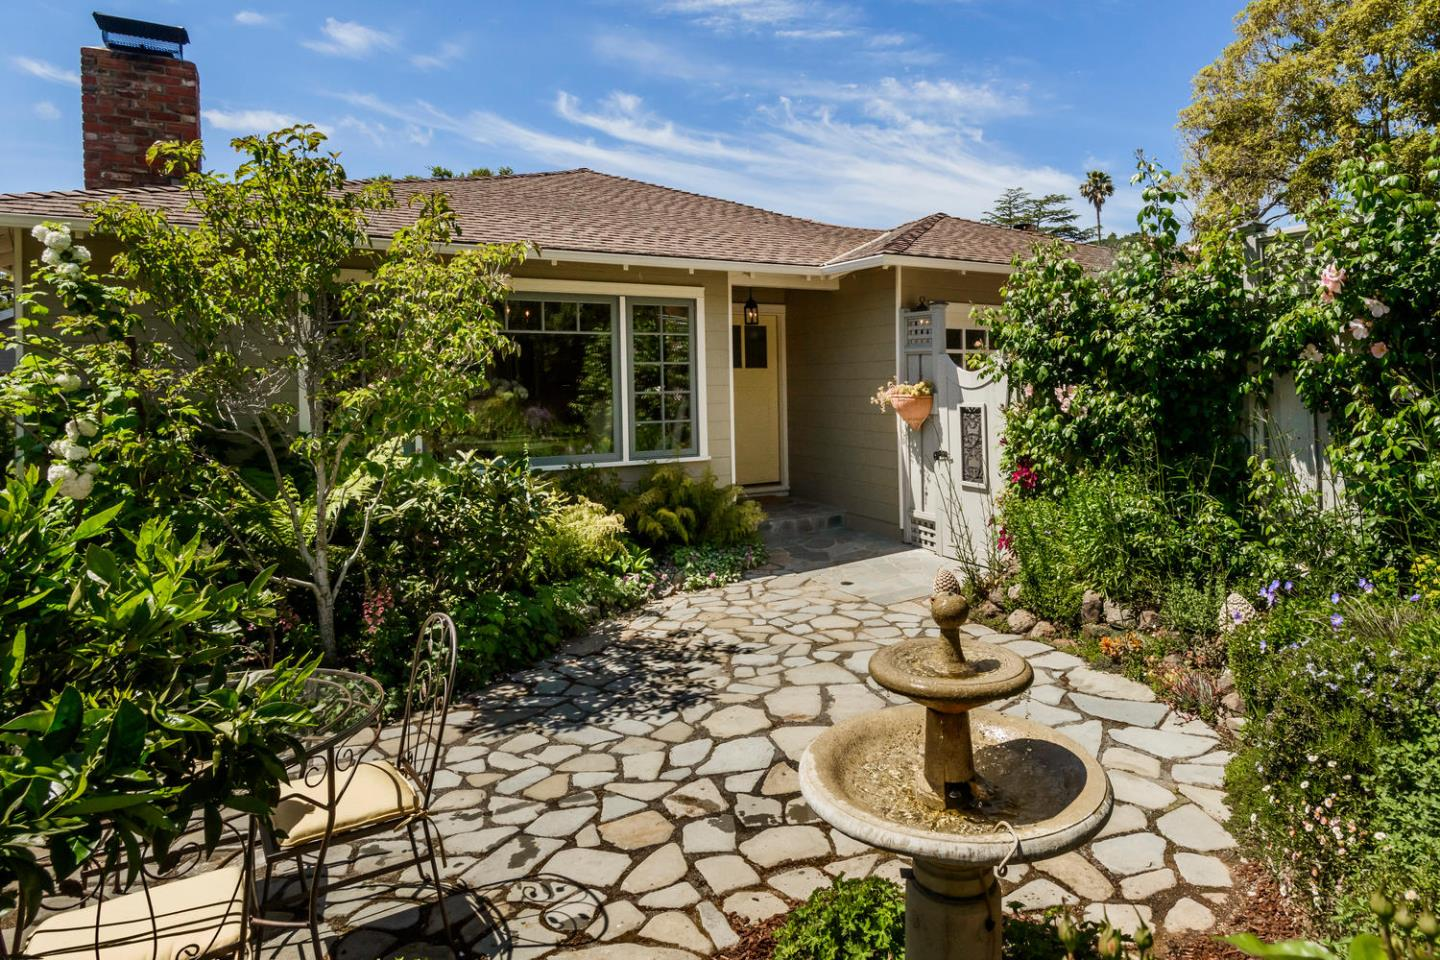 Additional photo for property listing at 2410 Cipriani Blvd  BELMONT, CALIFORNIA 94002